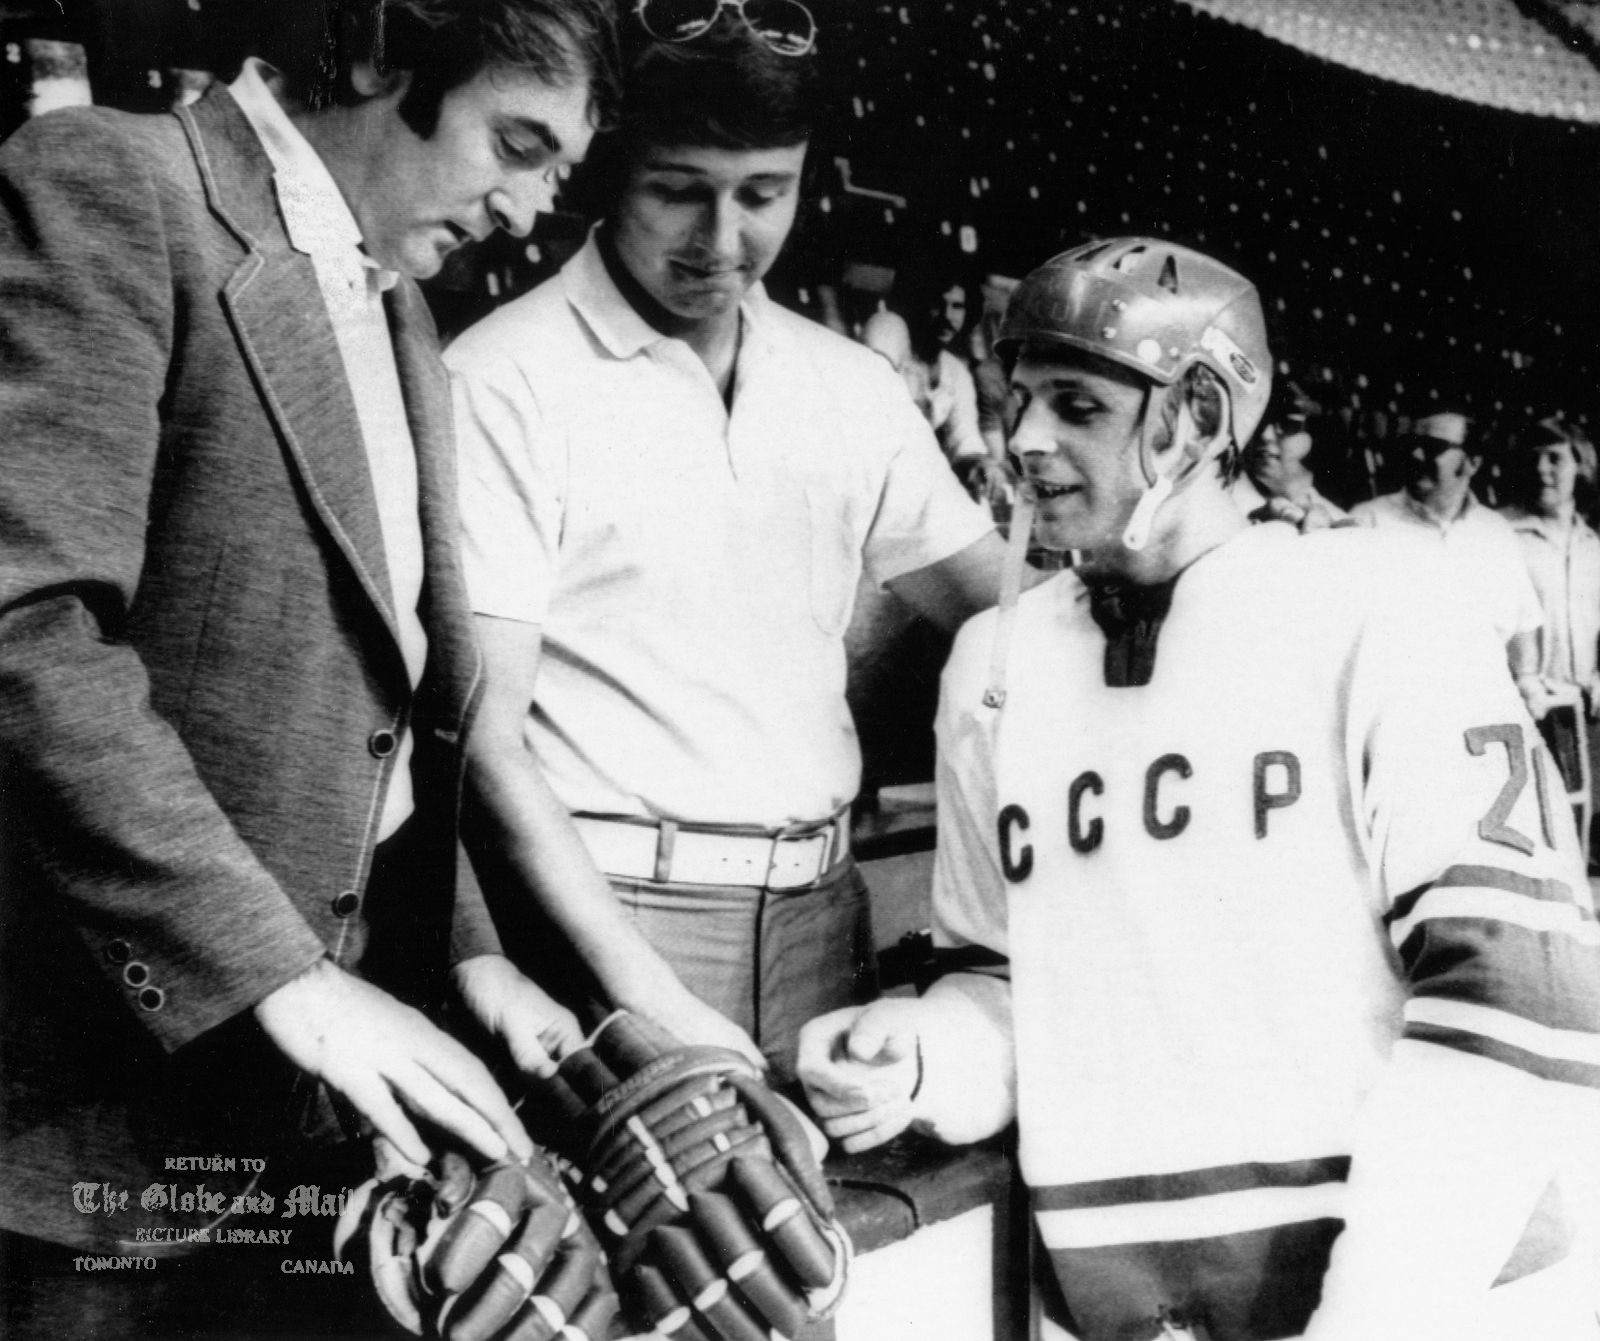 SEPTEMBER 1, 1972 -- MONTREAL -- FRIENDLY CONVERSATION -- Team Canada goalie, Eddie Johnston, left, and defenceman Brad Park, centre, have a friendly conversation with Russian forward Vyacheslav Solodukhin of the USSR national hockey team at the St. Lawrence Arena in suburban Montreal, September 1, 1972. Team Canada will meet the Russians in the first game of the Canada-Russia Summit Series on Sept. 2, 1972. CP PHOTO